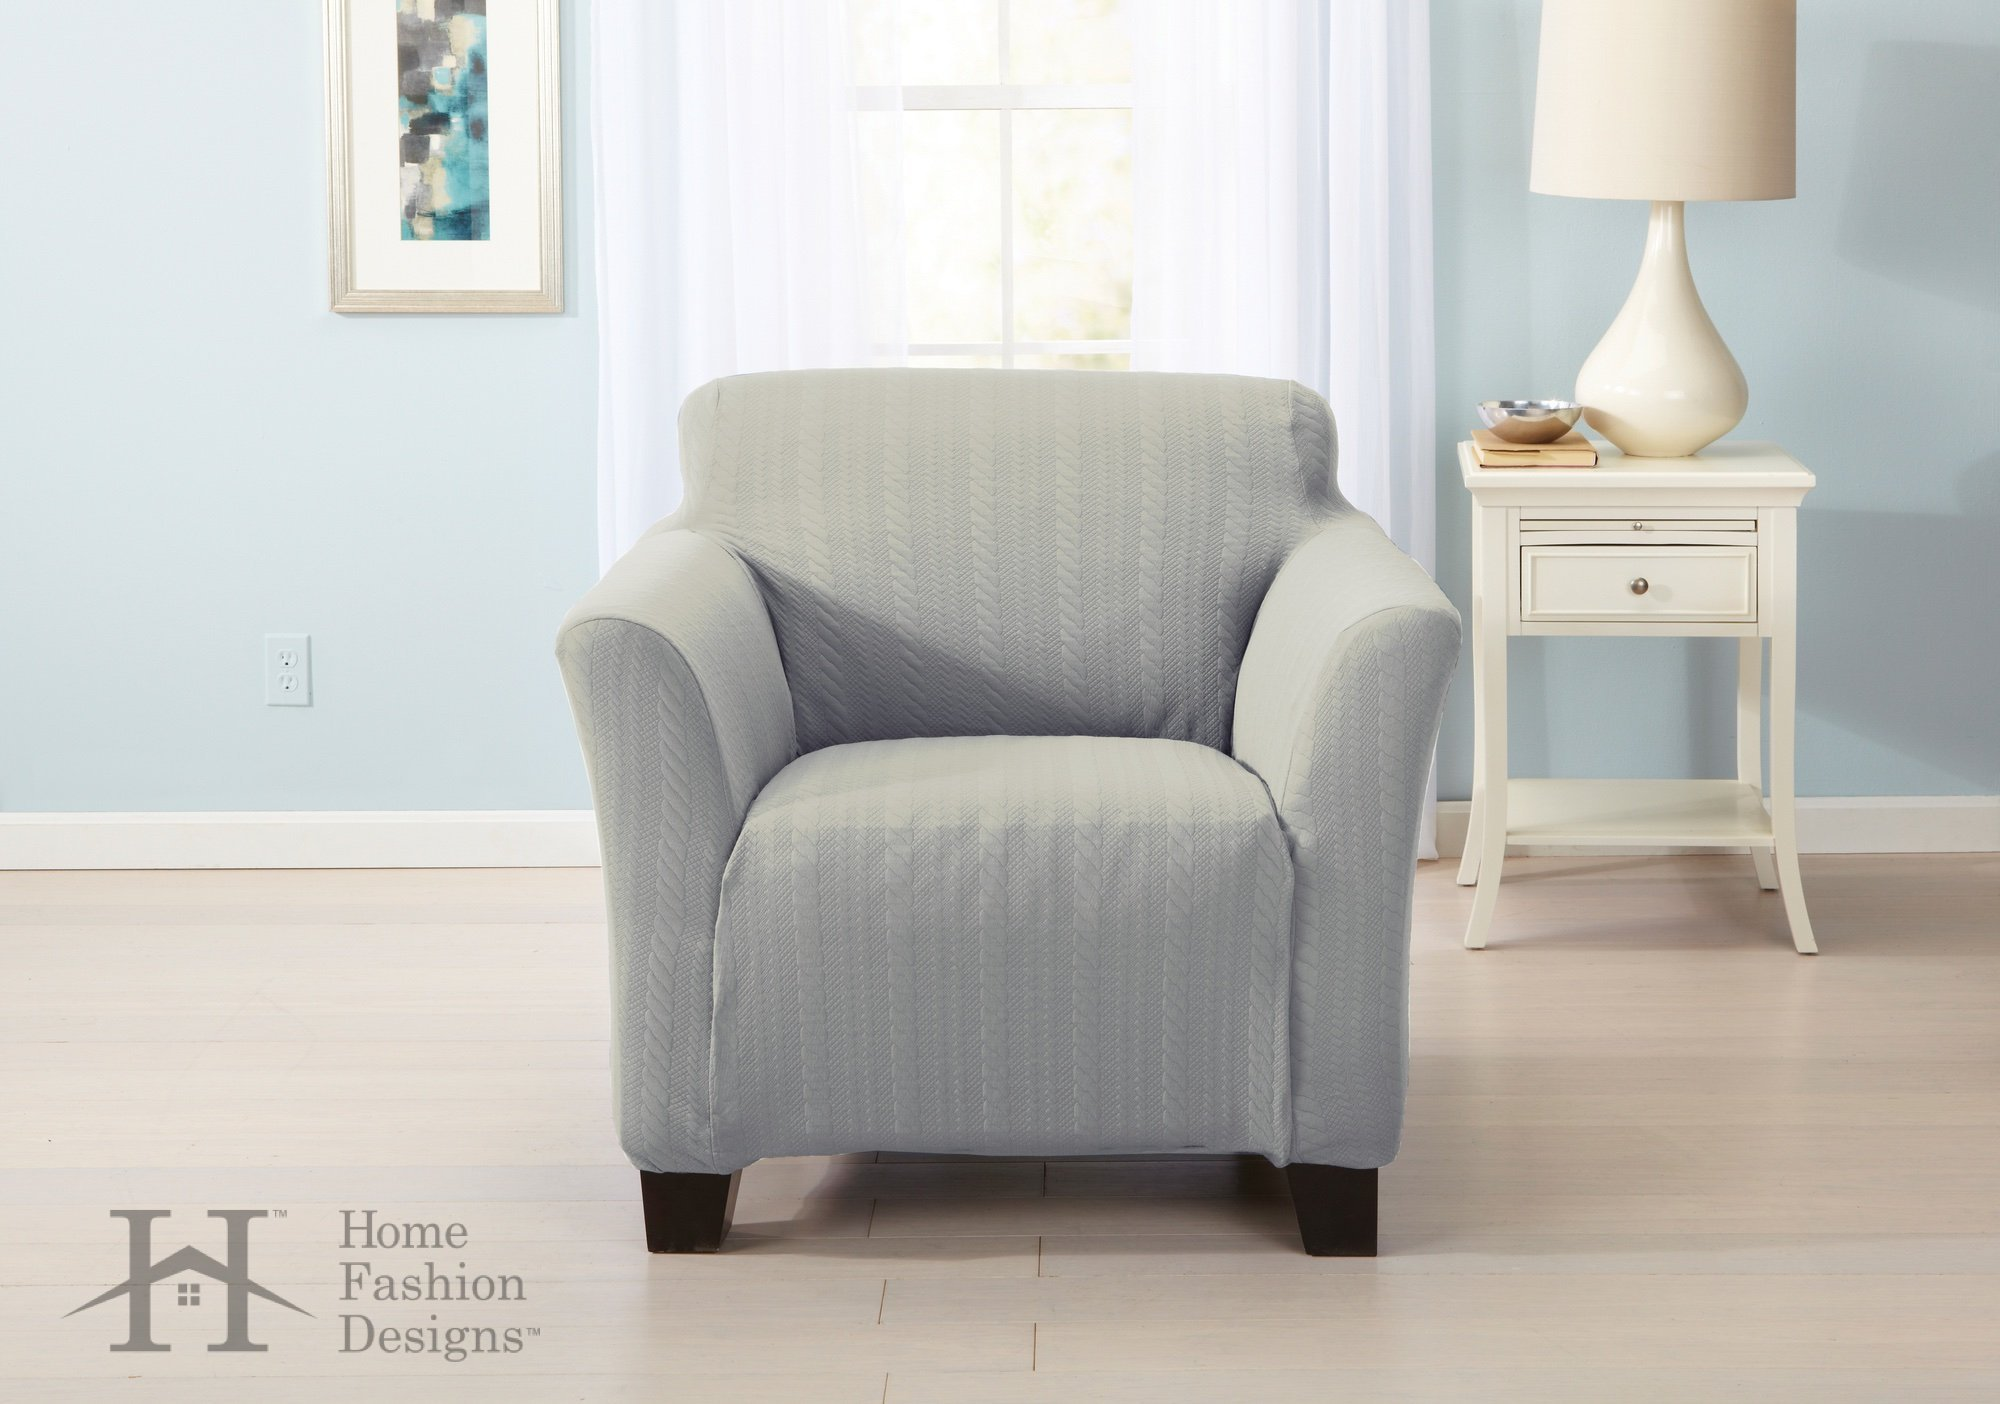 Home Fashion Designs Form Fit, Slip Resistant, Stylish Furniture Shield/Protector with Cable Knit Fabric. Darla Collection Platinum Strapless Slipcover. By Brand. (Chair, Light Grey)